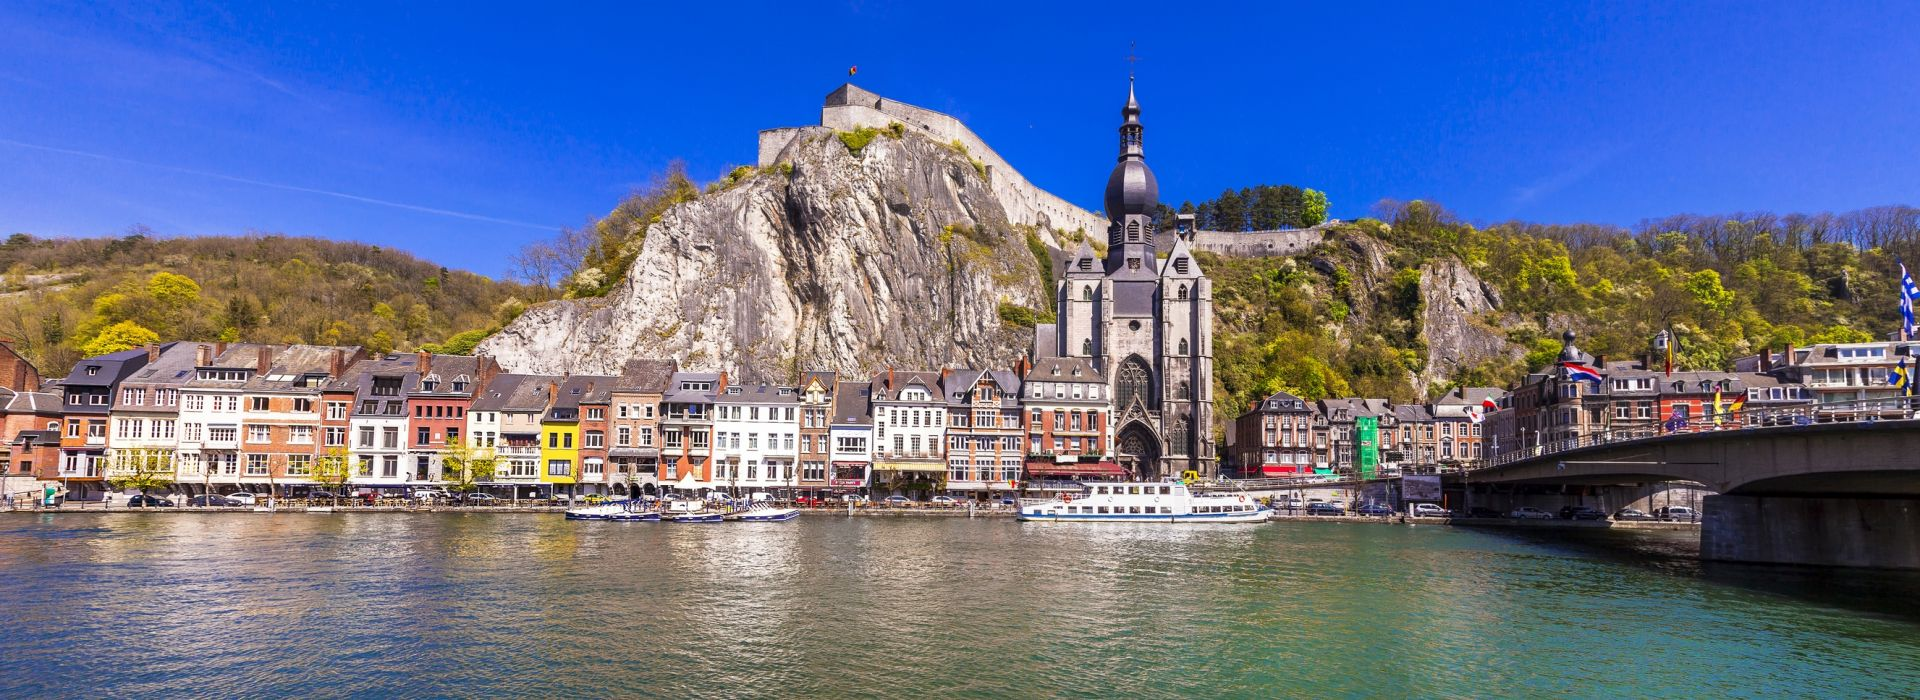 Travelling Belgium – Tours and Holiday Packages in Belgium